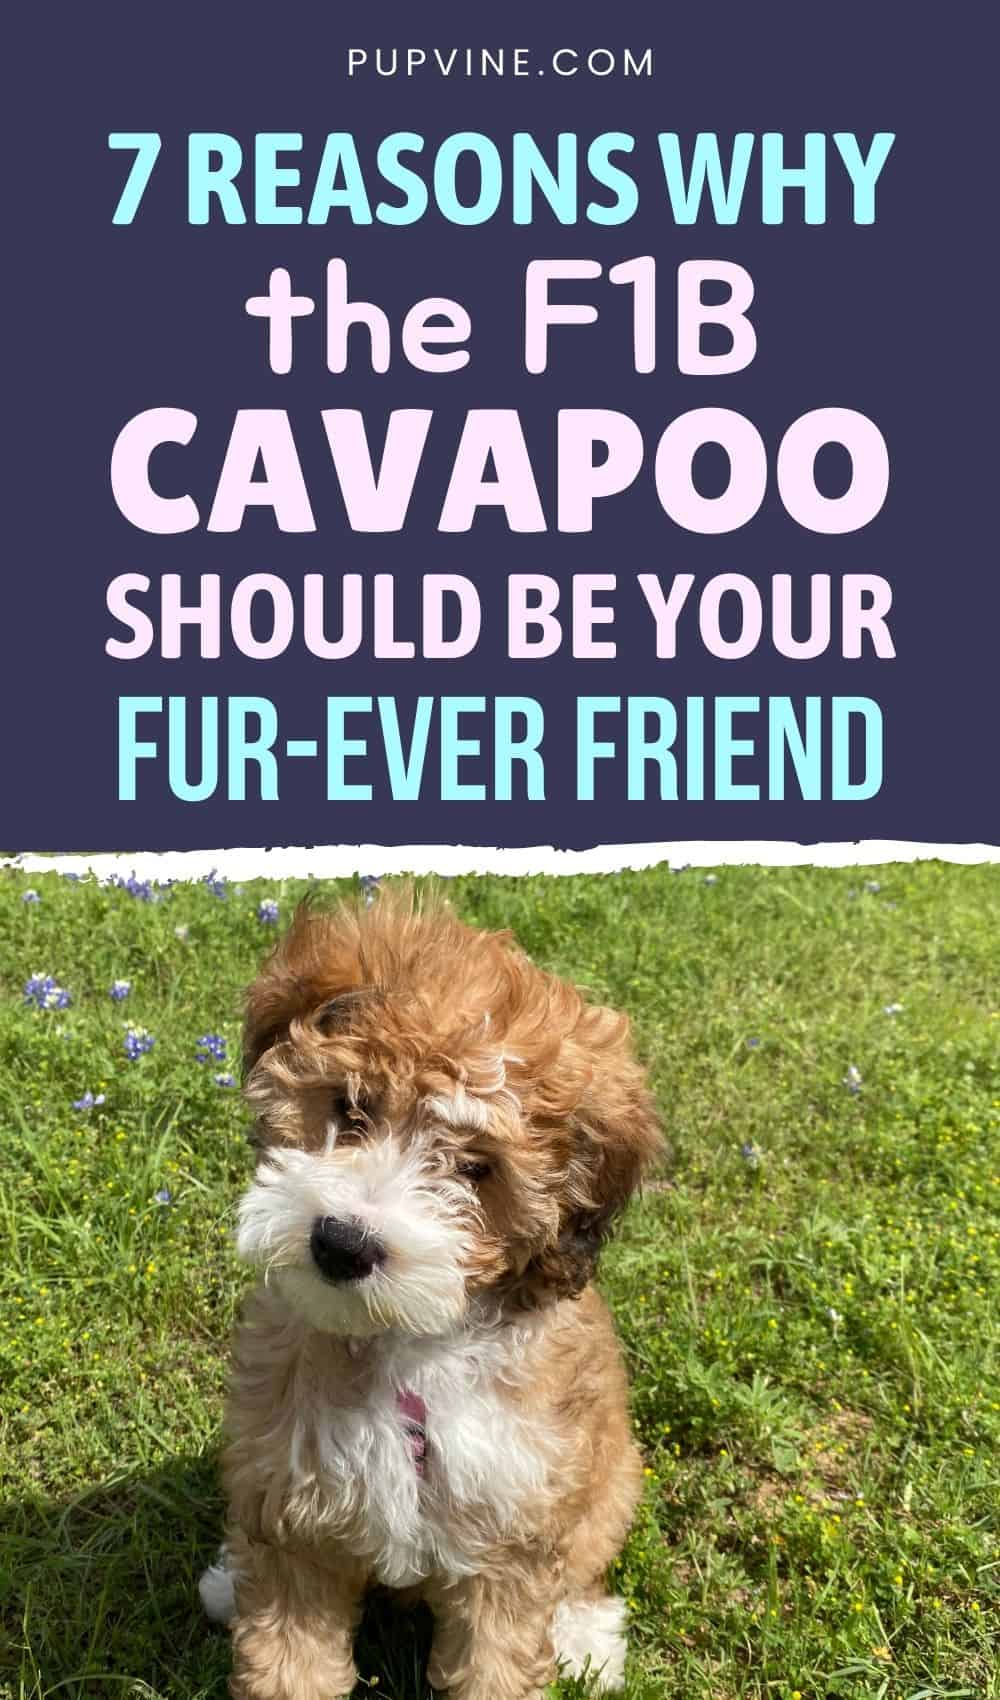 7 Reasons Why The F1B Cavapoo Should Be Your Fur-ever Friend